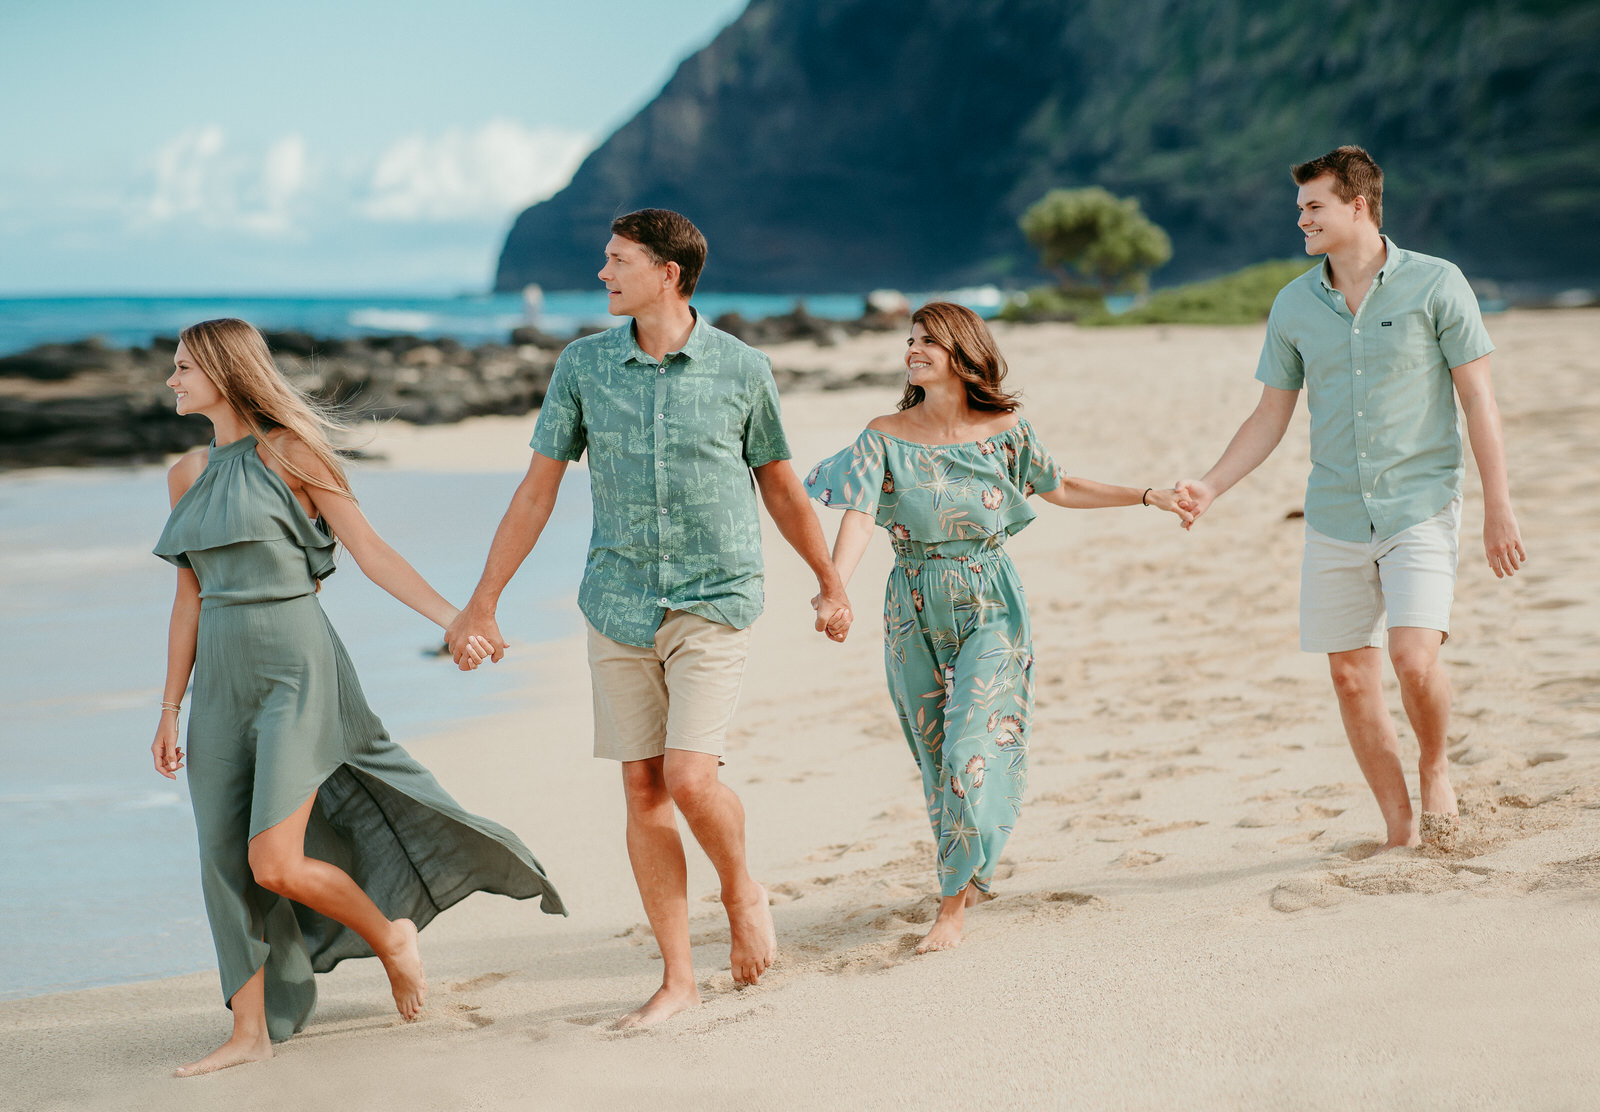 Campbell Family Vacation in Makapuu - Hawaii Family photographer - Ketino Photography -11.jpg